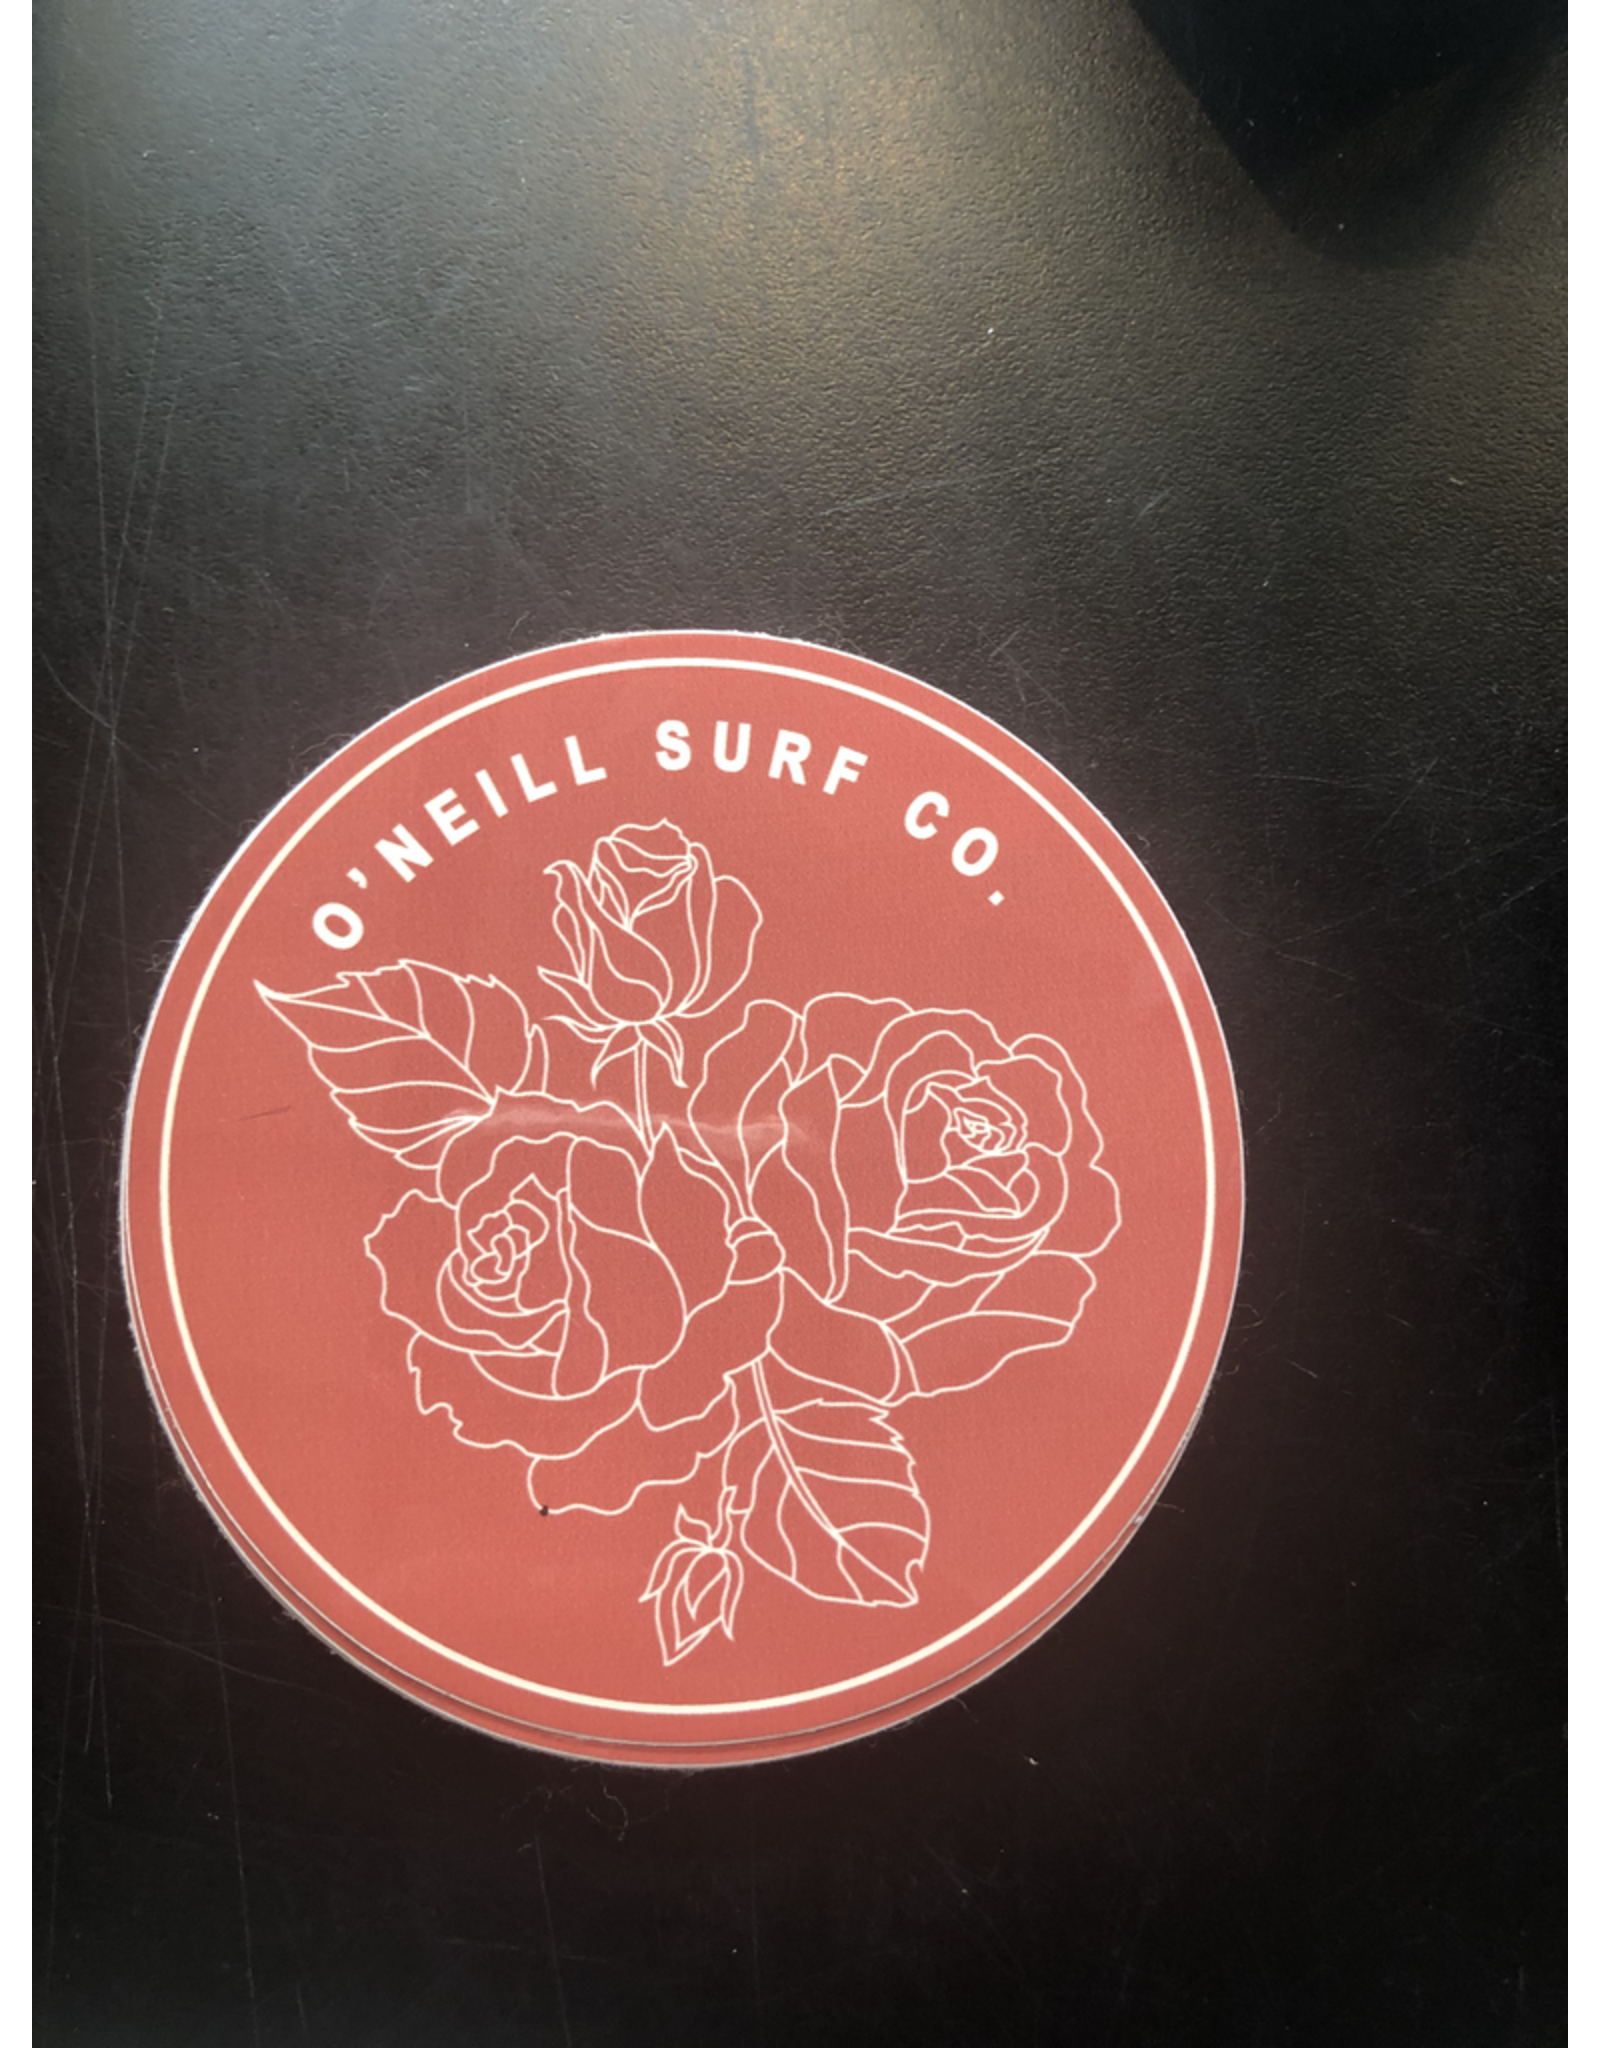 ONEILL O'NEILL ROSE CIRCLE STICKER